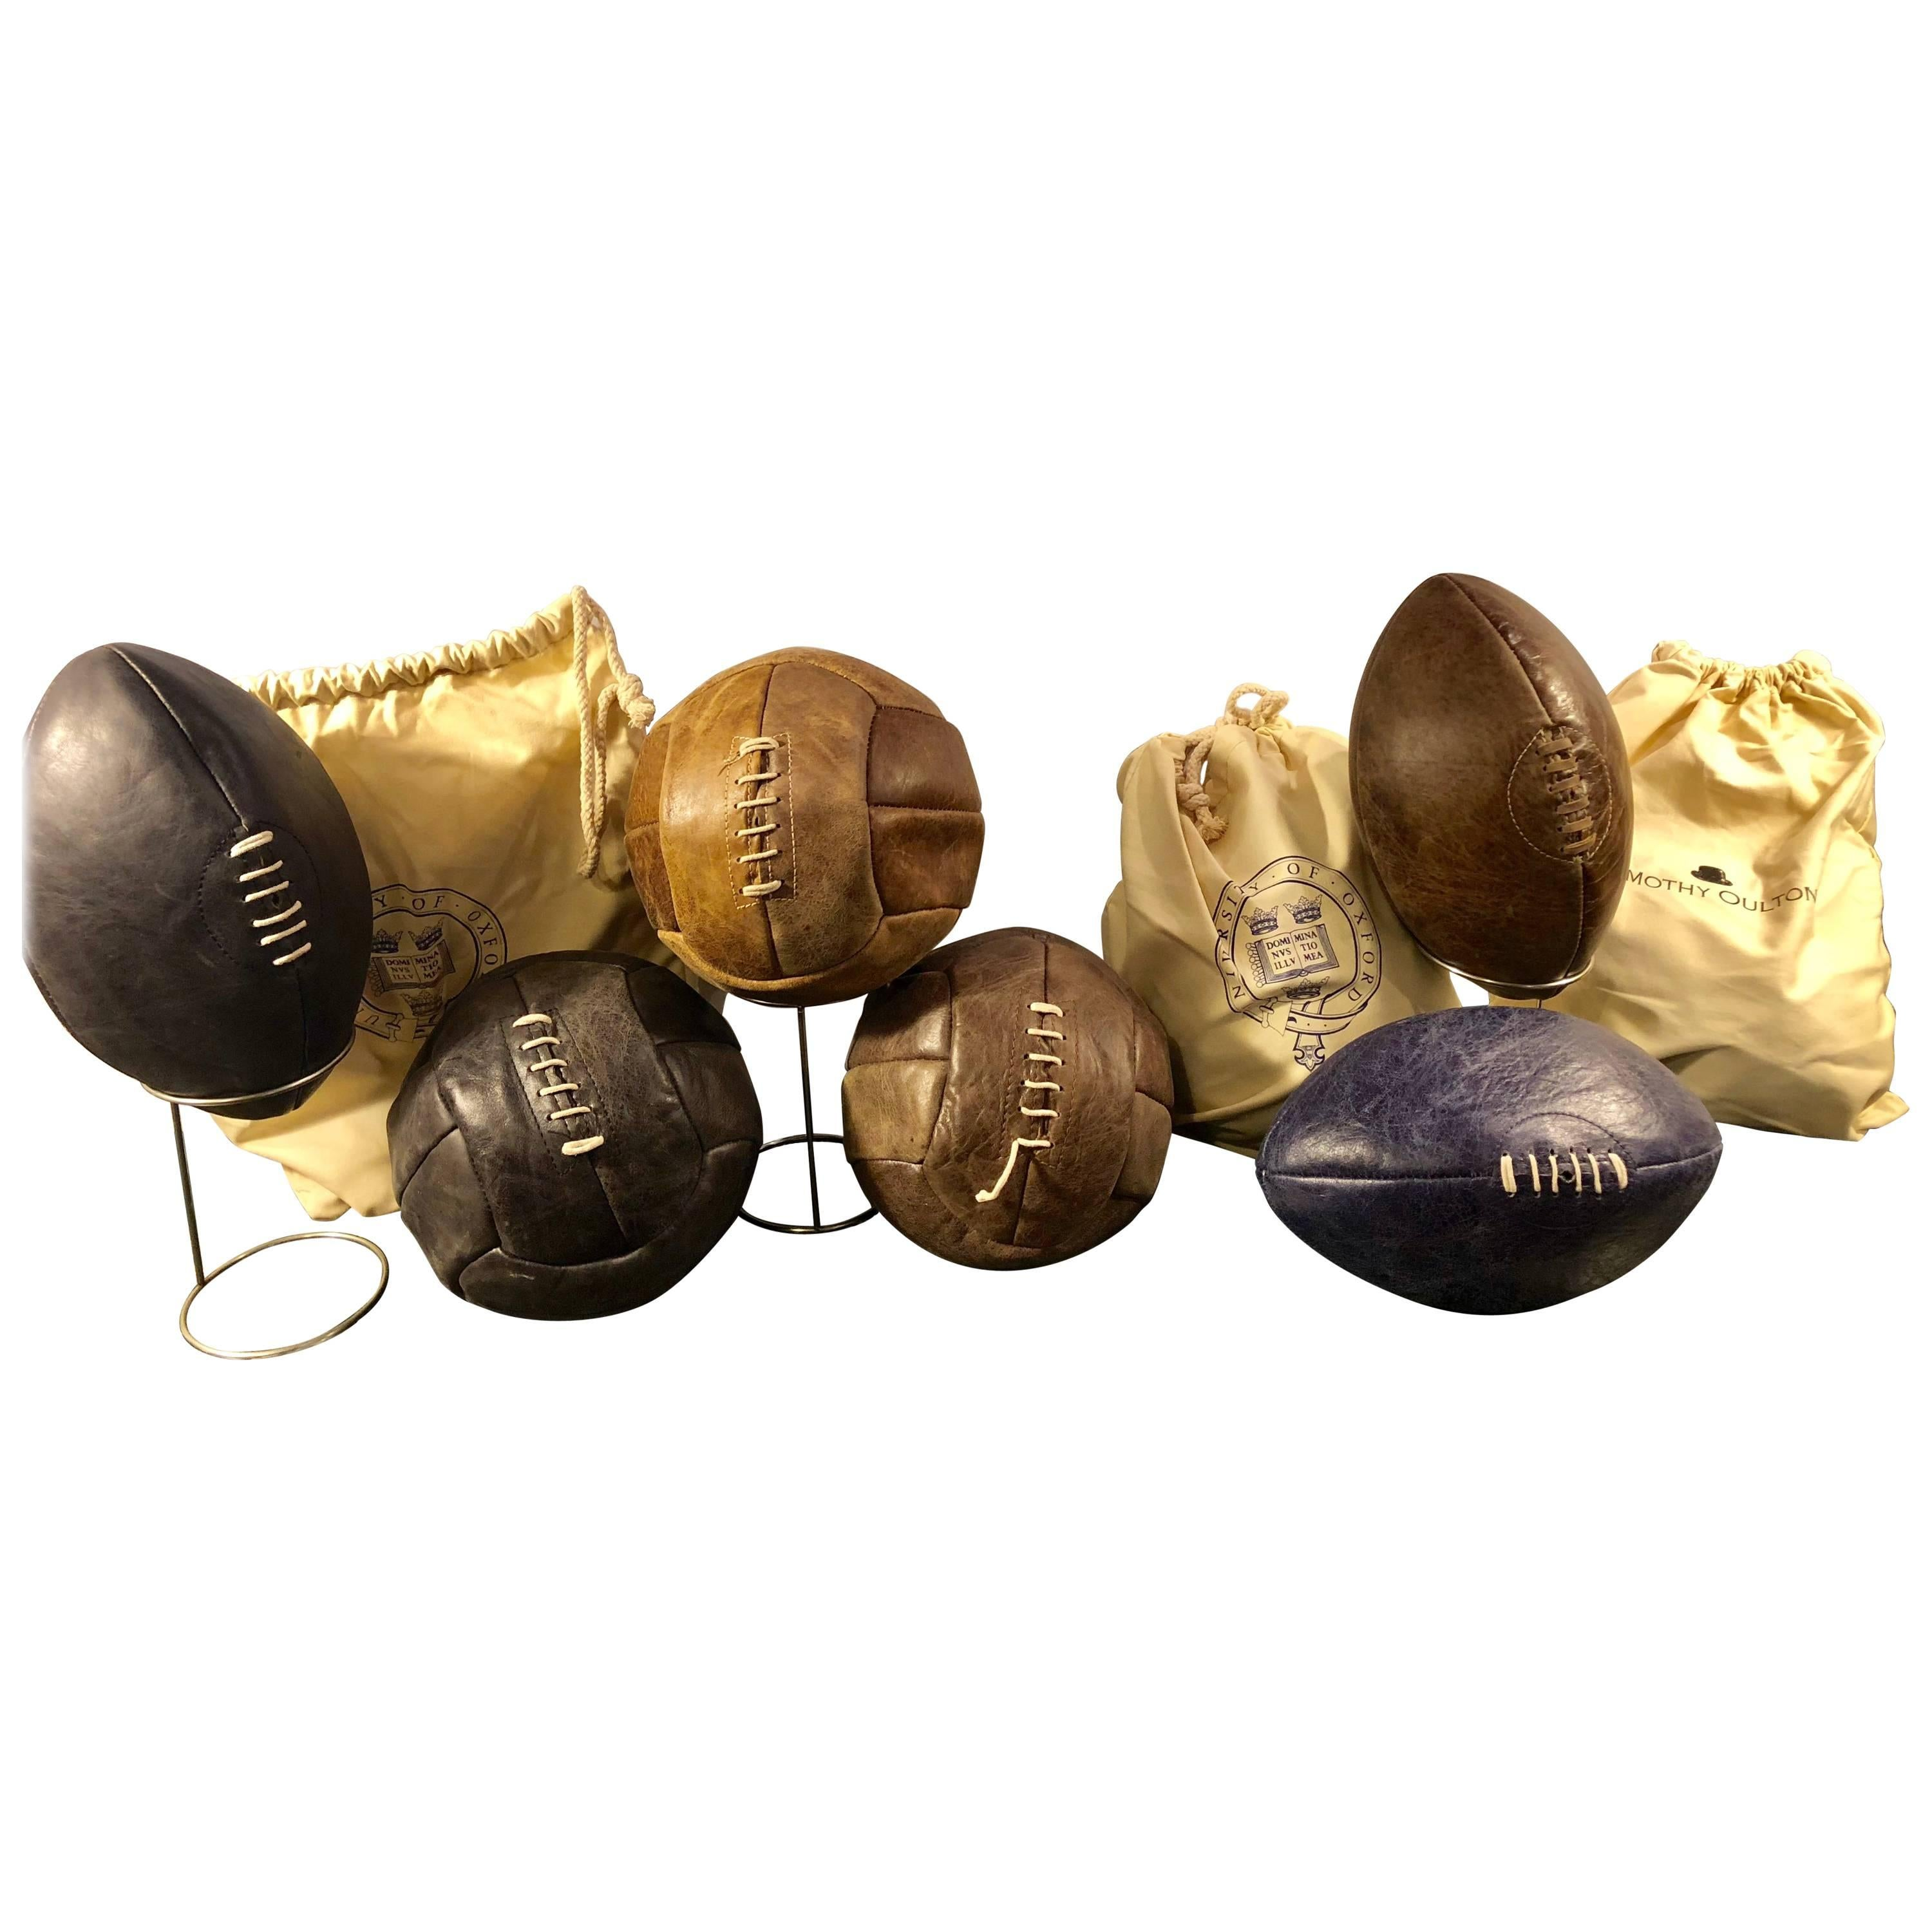 Footballs and Soccer Balls by Timothy Oulton, Selling Individually Seven Avail